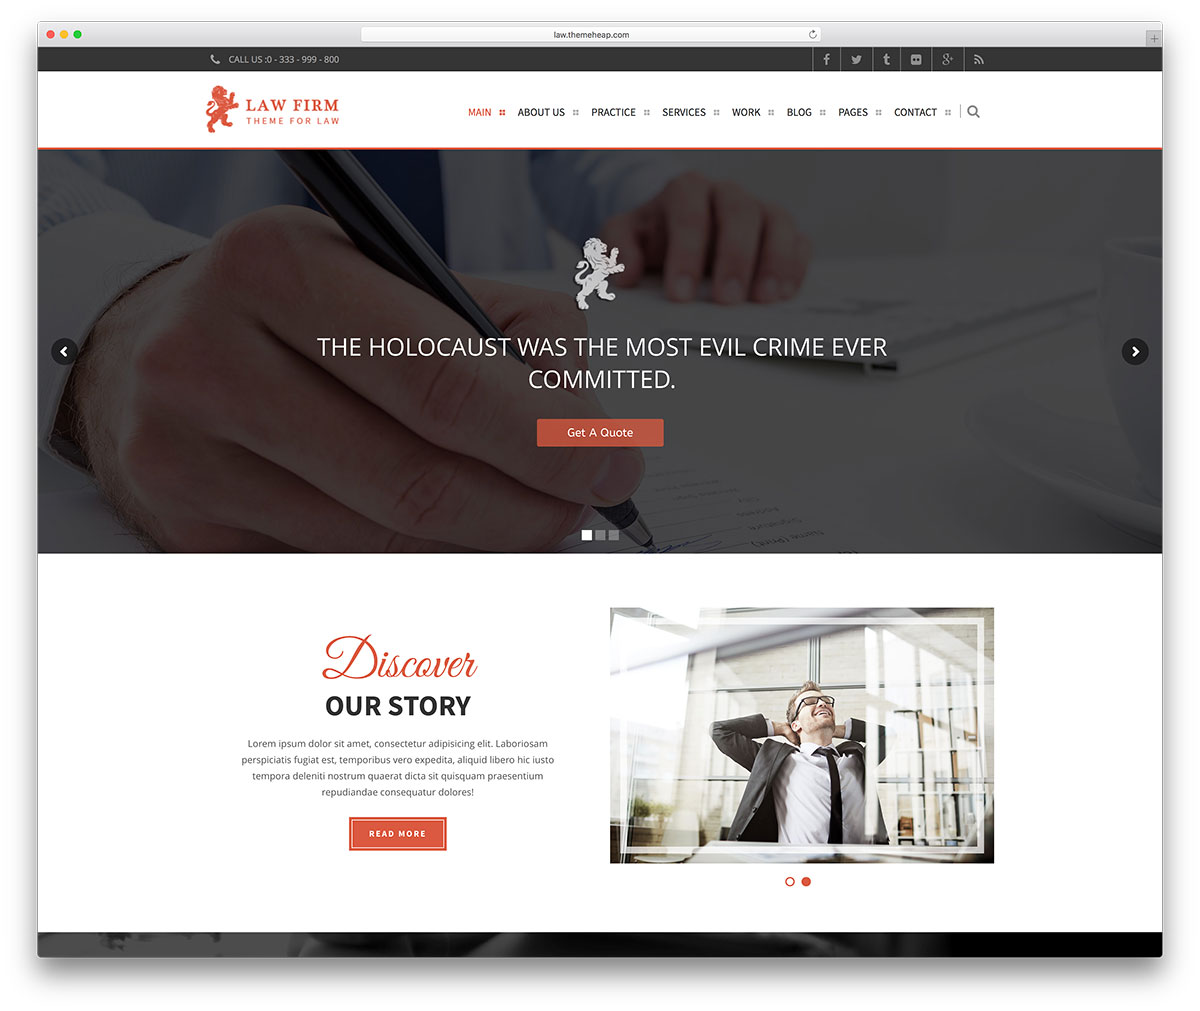 "Lawfirm-creative-avocat-wordpress-website-template ""width ="" 1200 ""height ="" 1011 ""data-lazy-srcset ="" https://cdn.colorlib.com/wp/wp-content/uploads/sites/2 /lawfirm-creative-lawyer-wordpress-website-template.jpg 1200w, https://cdn.colorlib.com/wp/wp-content/uploads/sites/2/lawfirm-creative-lawyer-wordpress-website-template- 300x253.jpg 300w, https://cdn.colorlib.com/wp/wp-content/uploads/sites/2/lawfirm-creative-lawyer-word-word-website-768x647.jpg 768w, https: // cdn. colorlib.com/wp/wp-content/uploads/sites/2/lawfirm-creative-lawyer-wordpress-website-template-1024x863.jpg 1024w ""data-lazy-tailles ="" (largeur maximale: 1200px) 100vw, 1200px ""data-lazy-src ="" http://webypress.fr/wp-content/uploads/2018/12/1545359023_175_30-meilleurs-thèmes-WordPress-pour-avocats-à-l39intention-des-cabinets-d39avocats-et-des-avocats-2018.jpg?is-pending-load= 1 ""srcset ="" données: image / gif; base64, R0lGODlhAQABAIAAAAAAAP /// yH5BAEAAAAALAAAAAABAAAAAAIBRAA7 ""/></p> <p><noscript><img class="